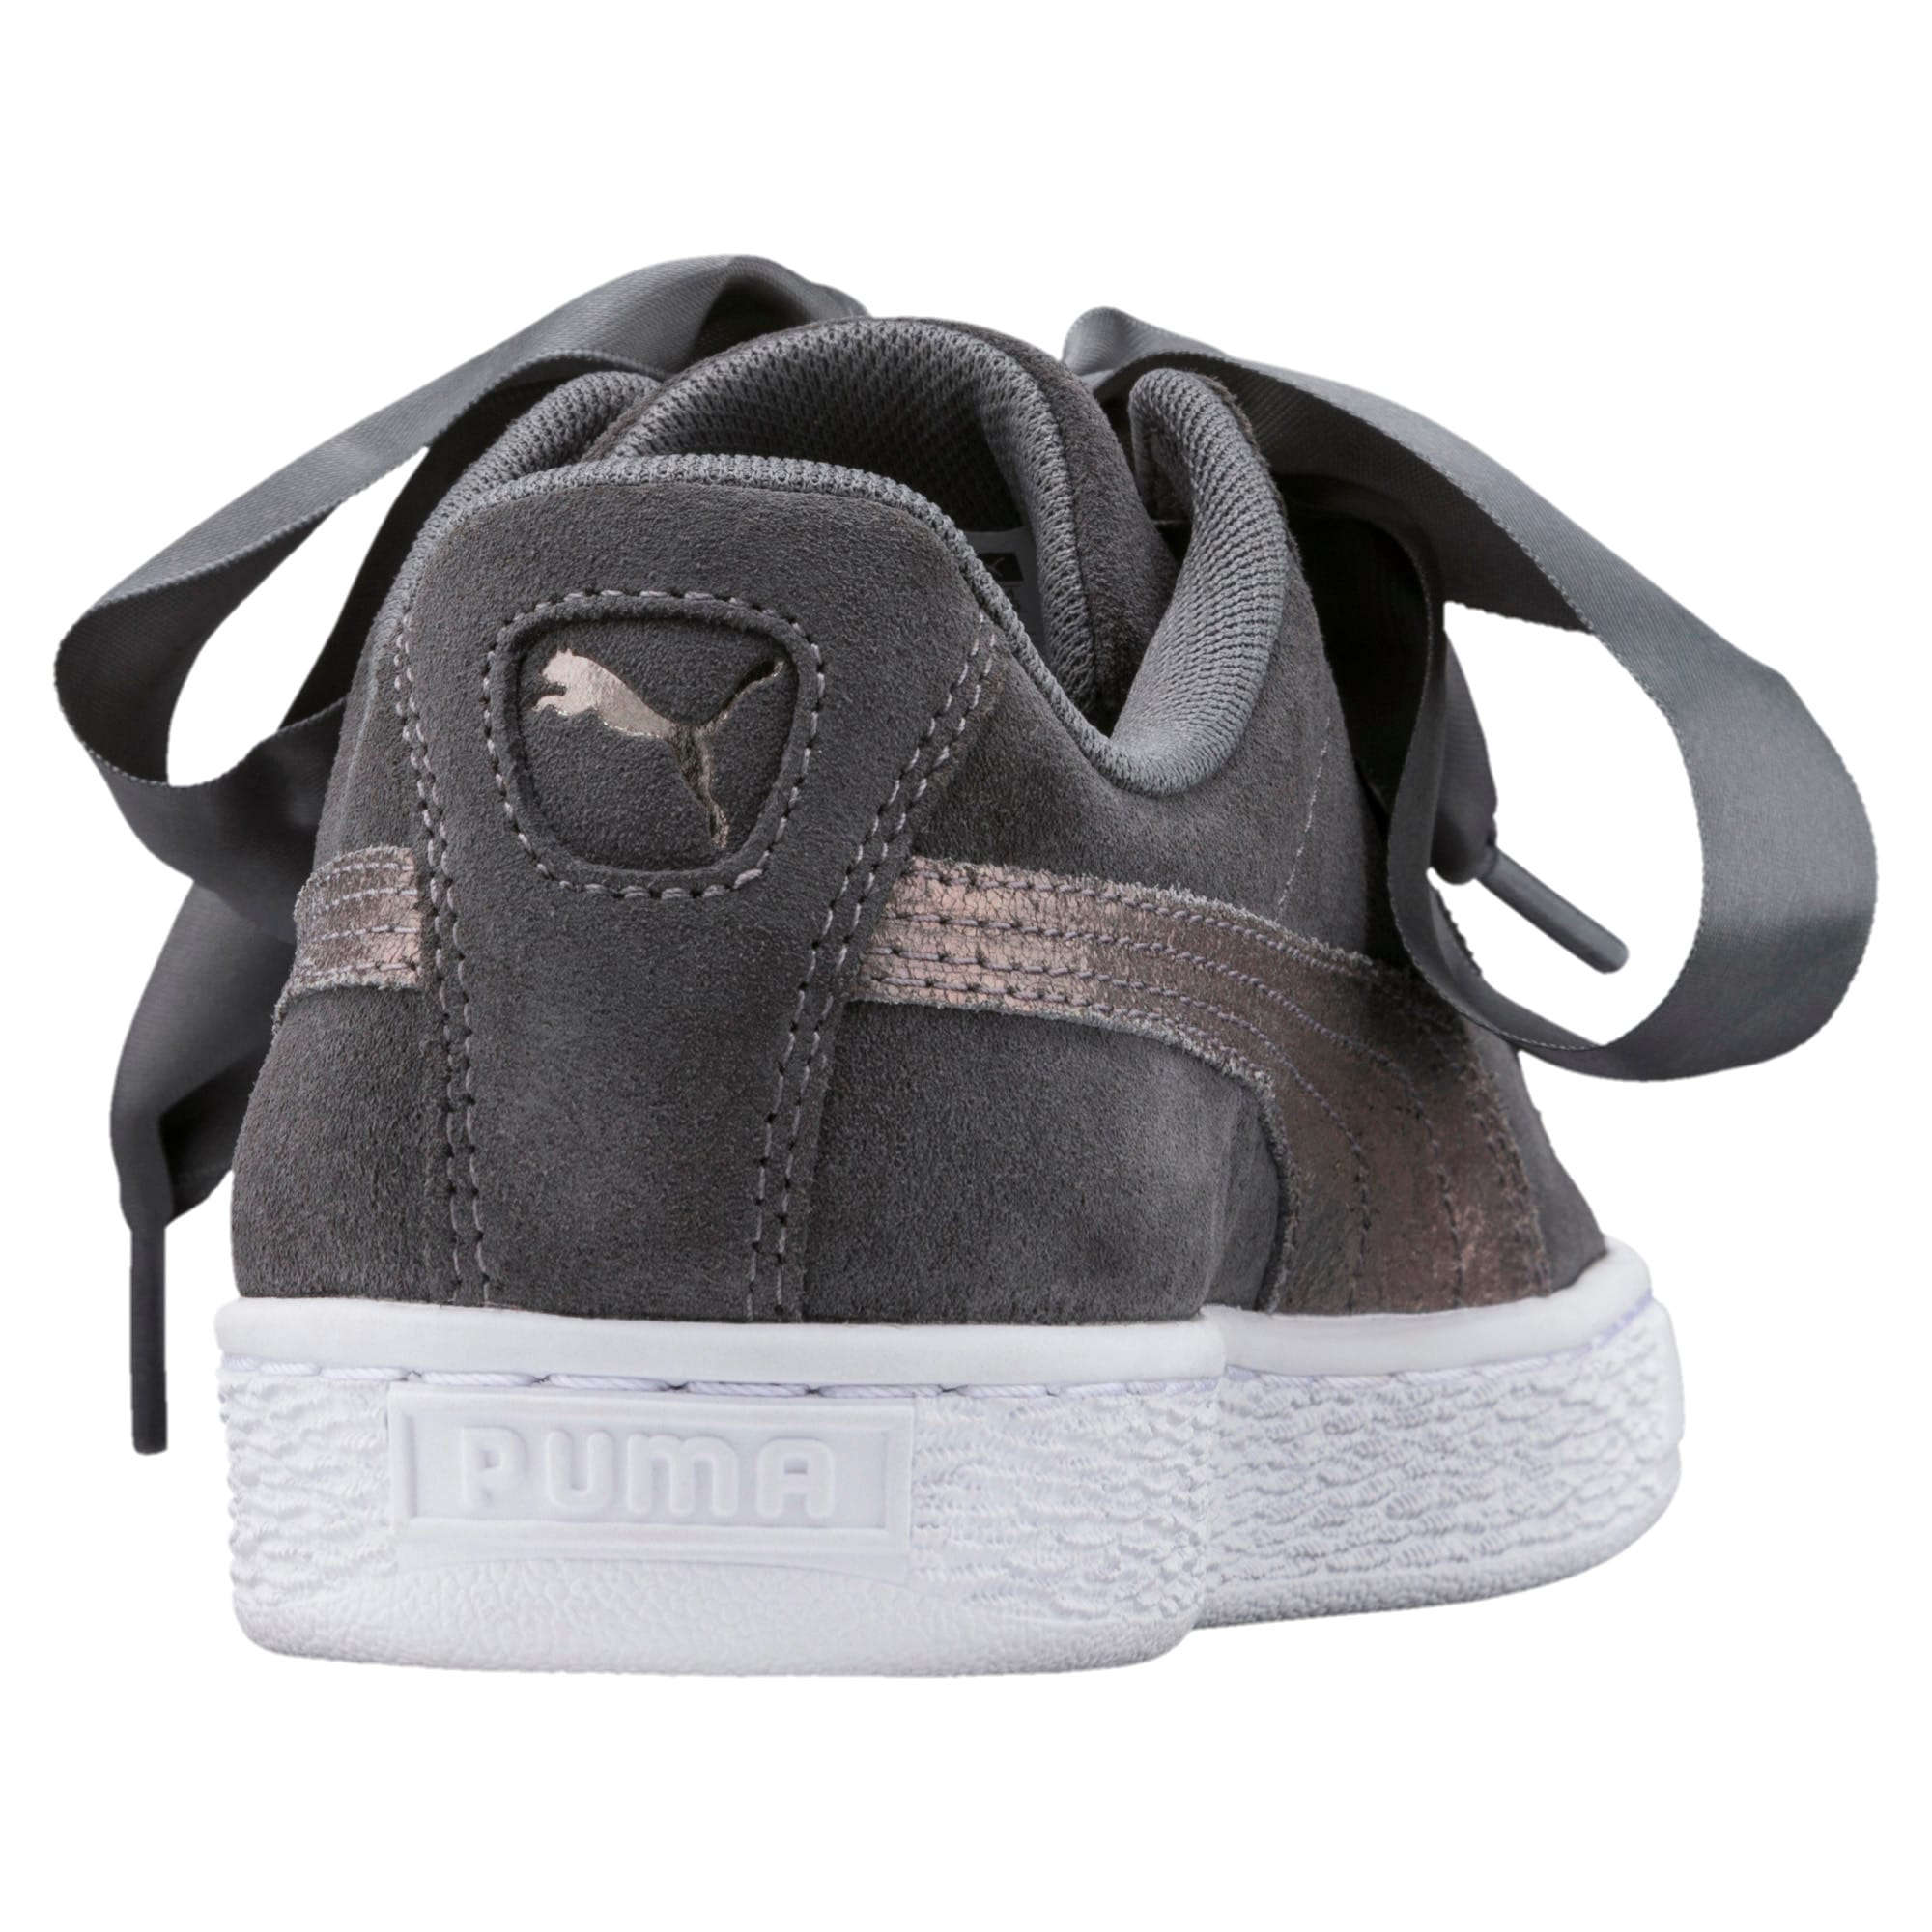 Thumbnail 3 of Suede Heart LunaLux Women's Trainers, Smoked Pearl, medium-IND